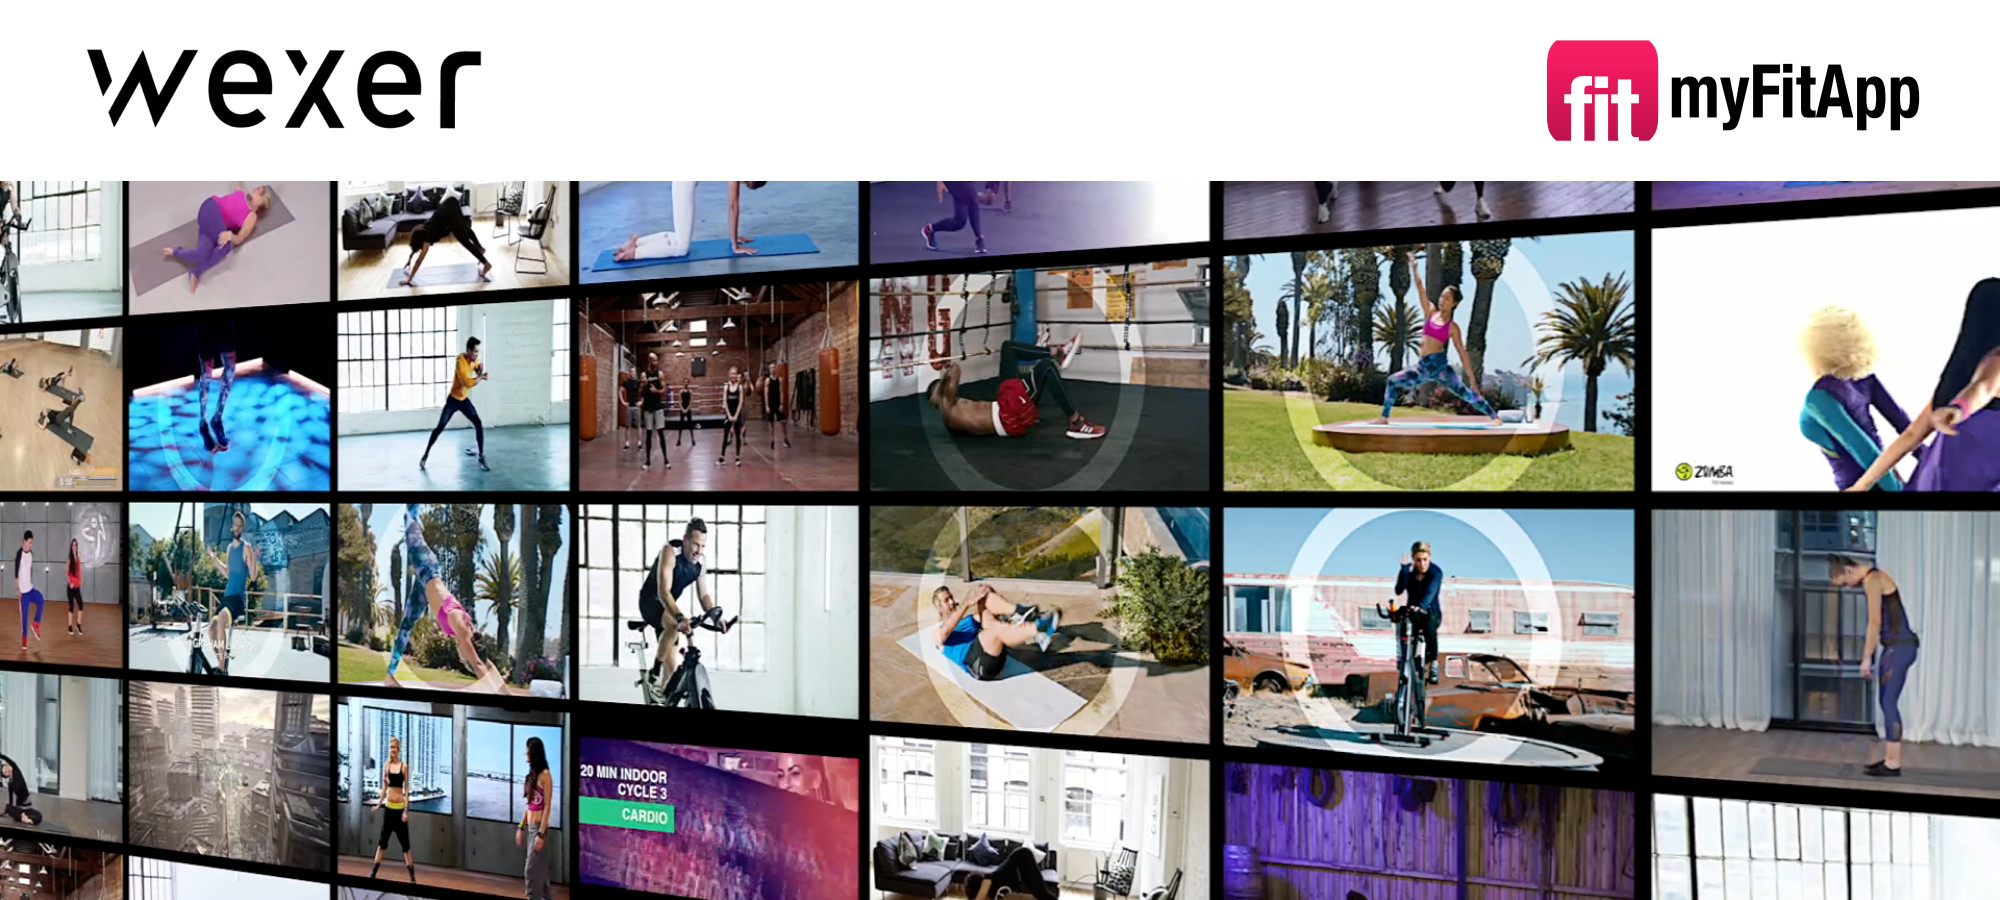 WEXER Video Workout at Home